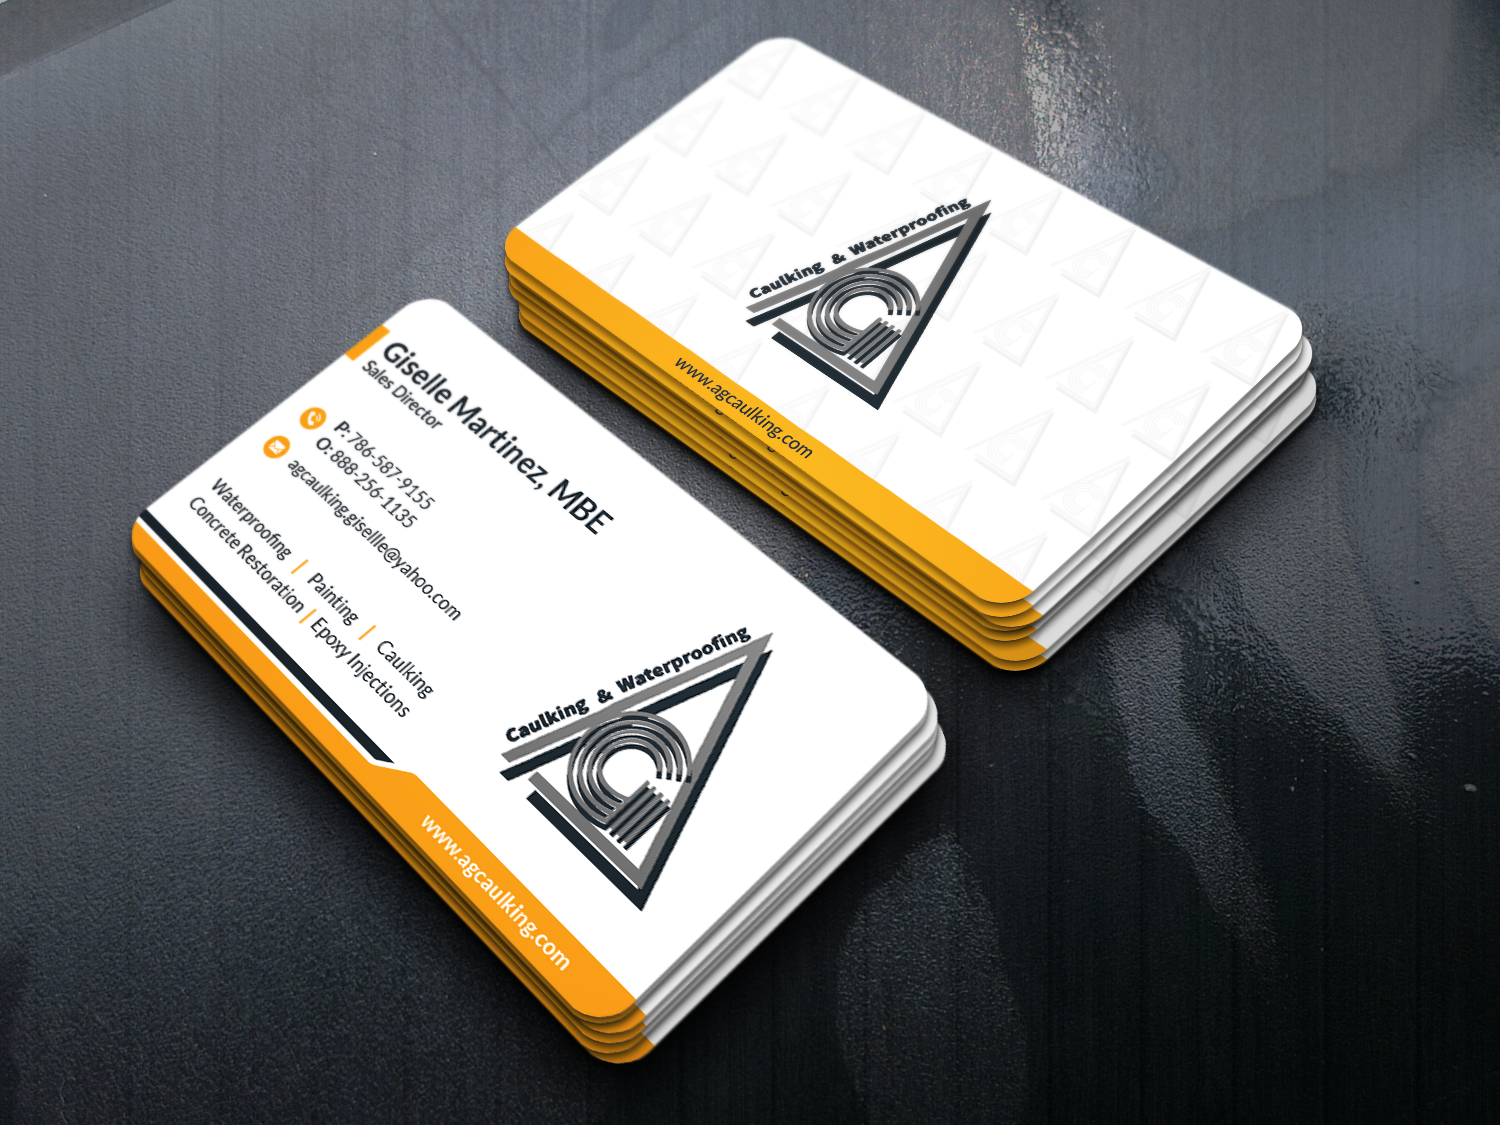 I will design professional BUSINESS-CARD in 2 hours